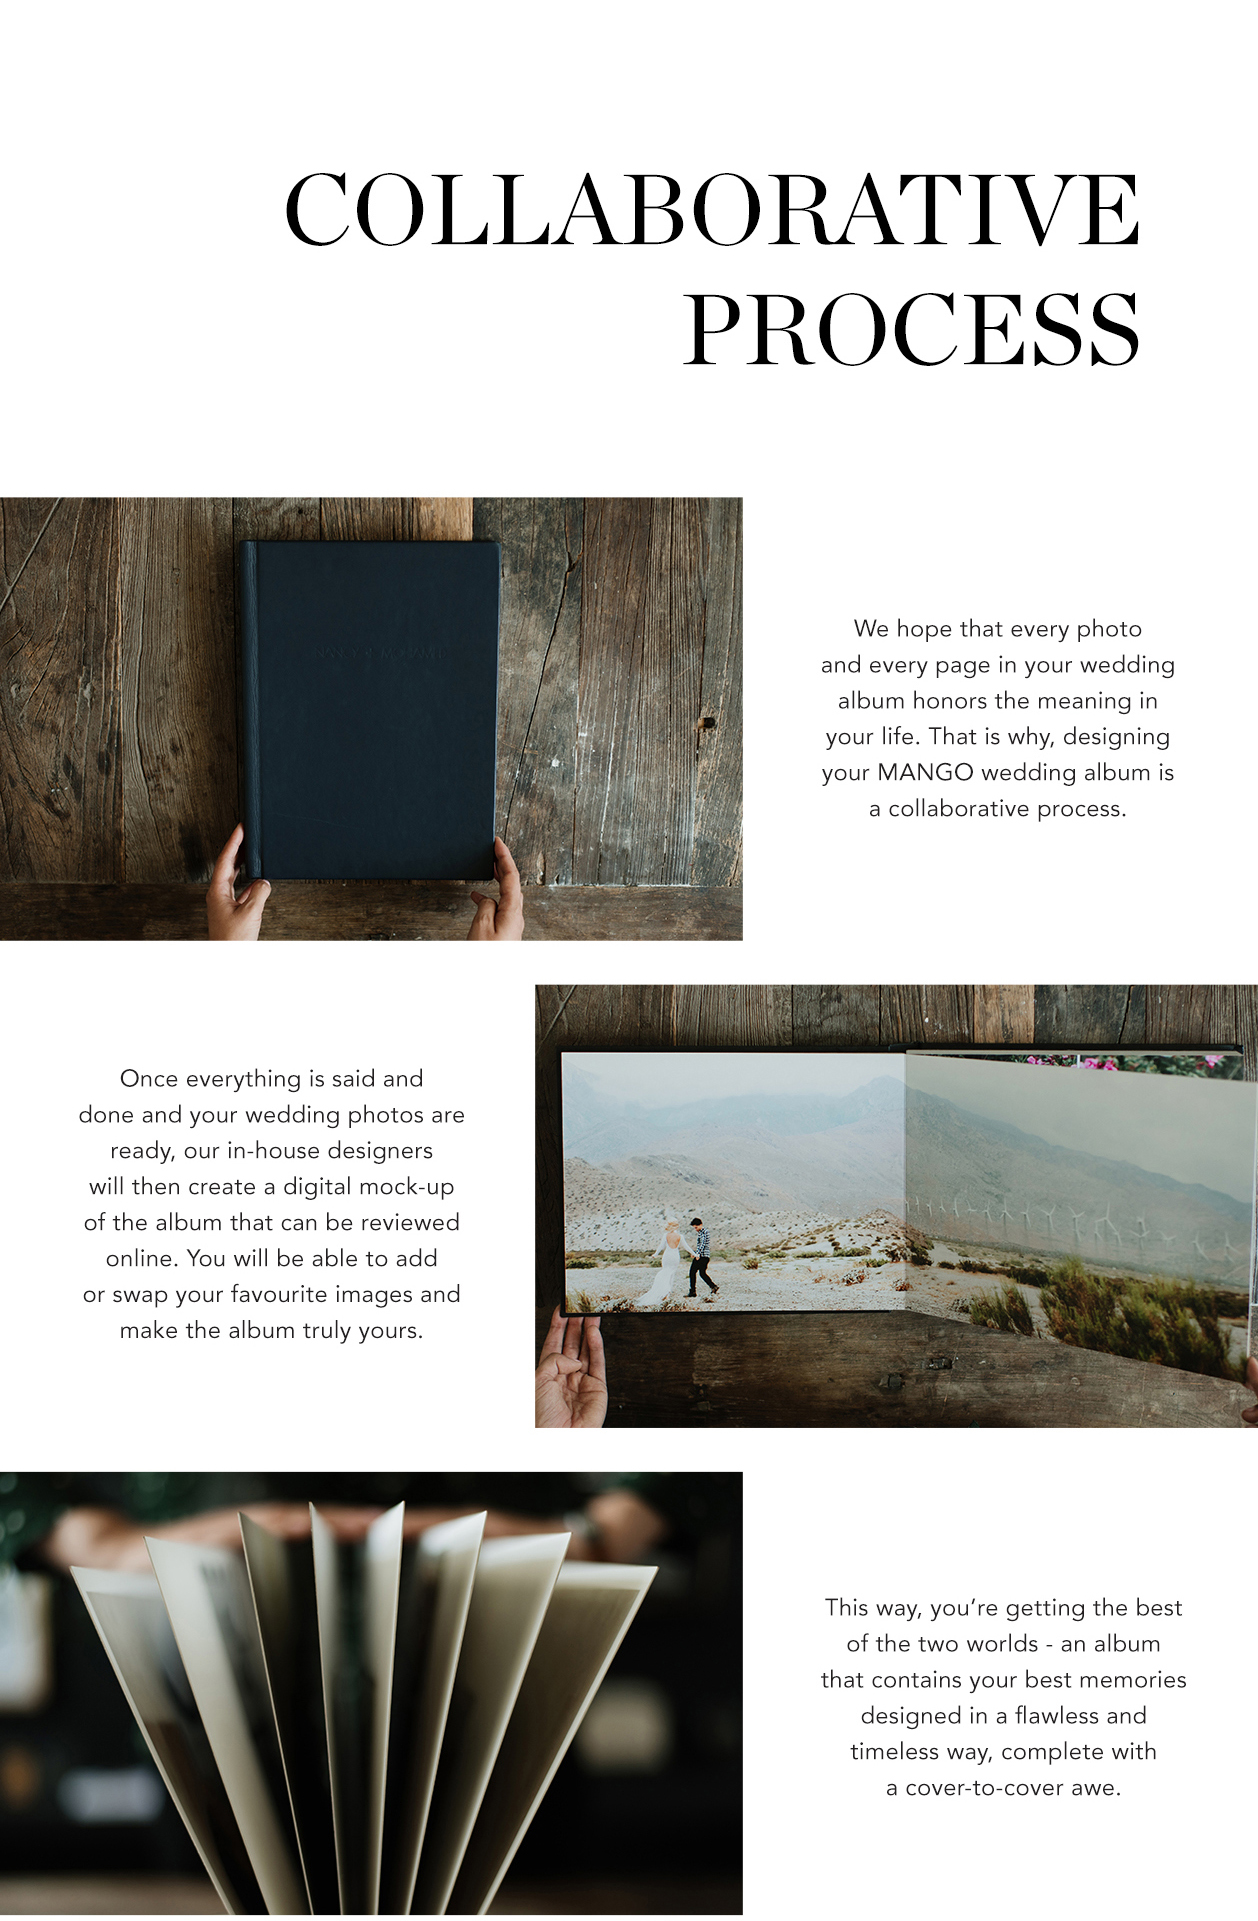 Why you should invest in Mango Studios wedding photo album